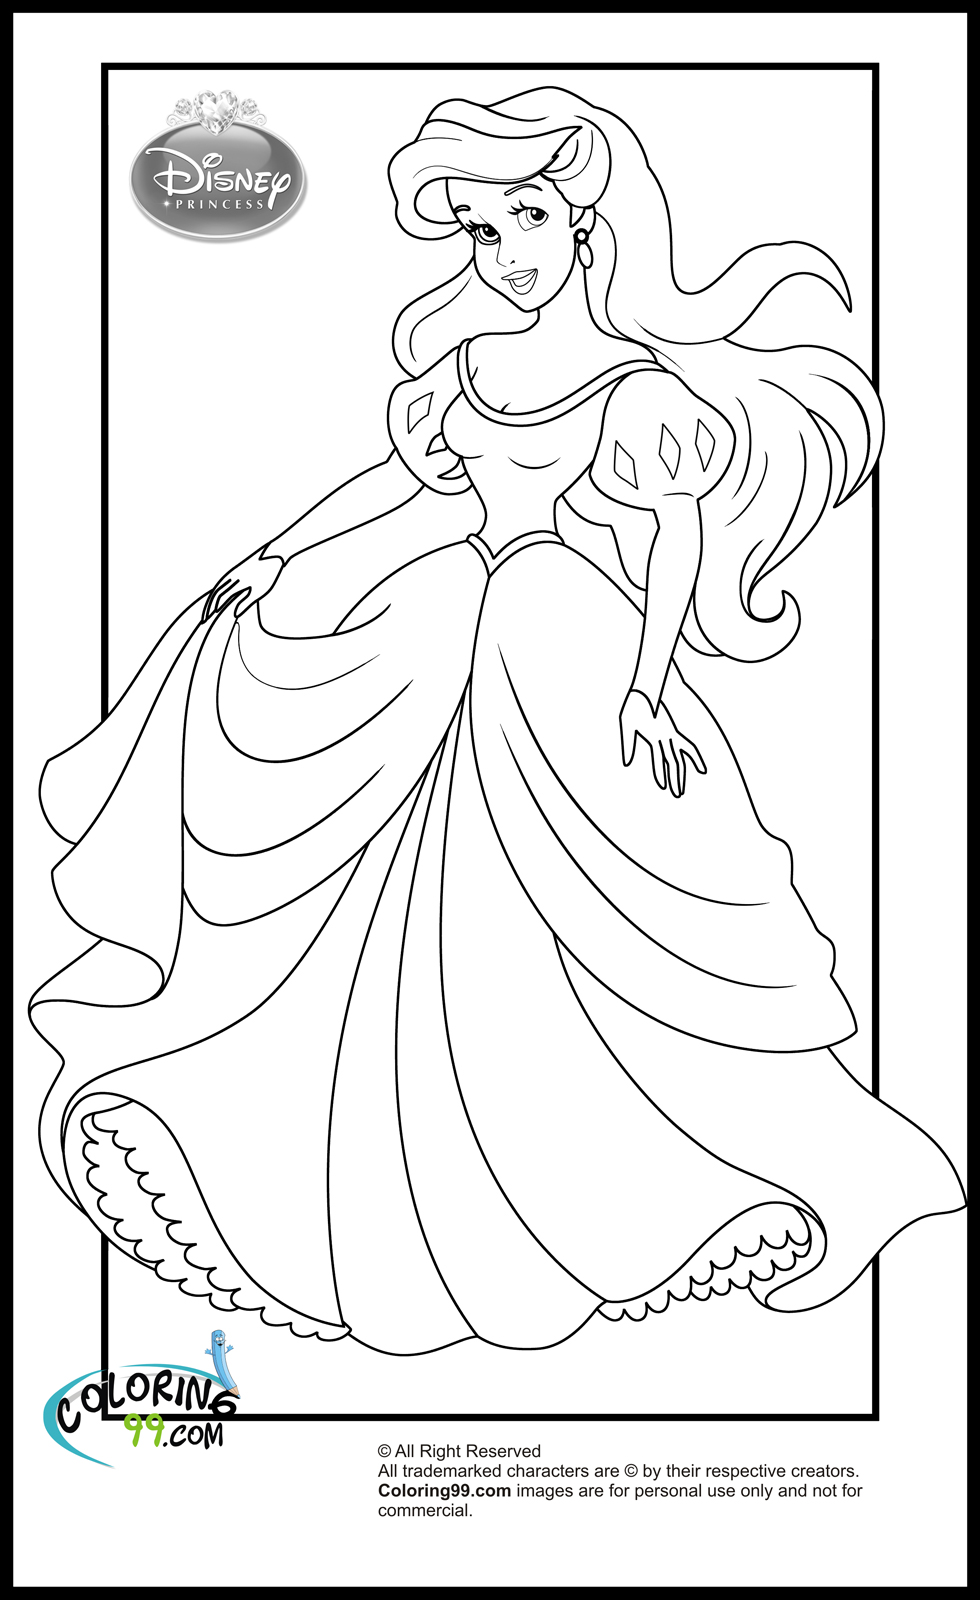 Disney Princess Coloring Pages Minister Coloring Ariel Princess Coloring Page Free Coloring Sheets